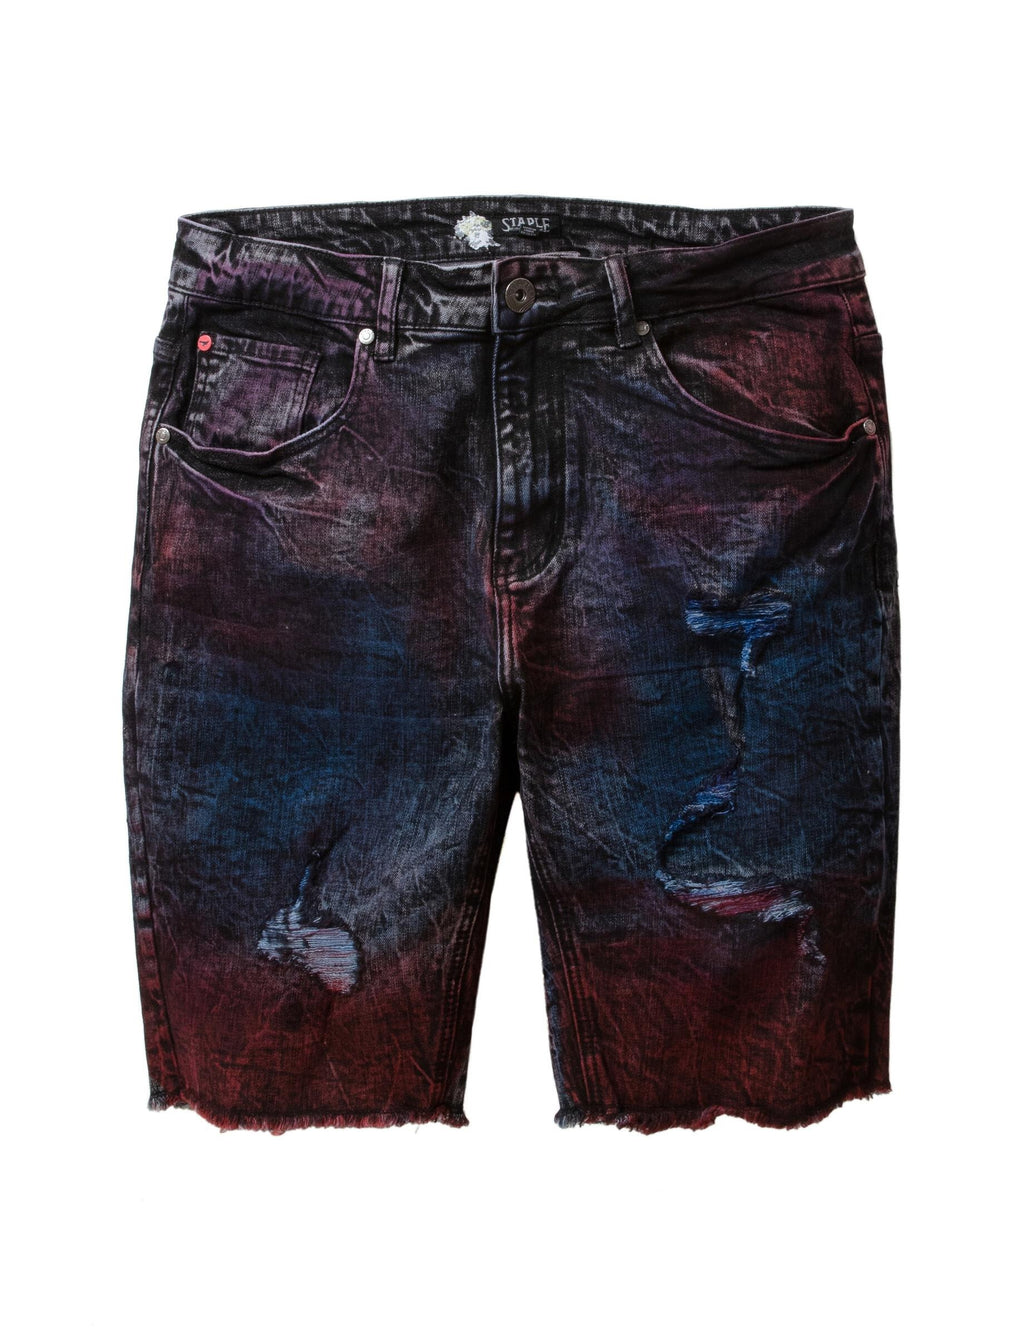 Spray Denim Shorts - Shorts | Staple Pigeon